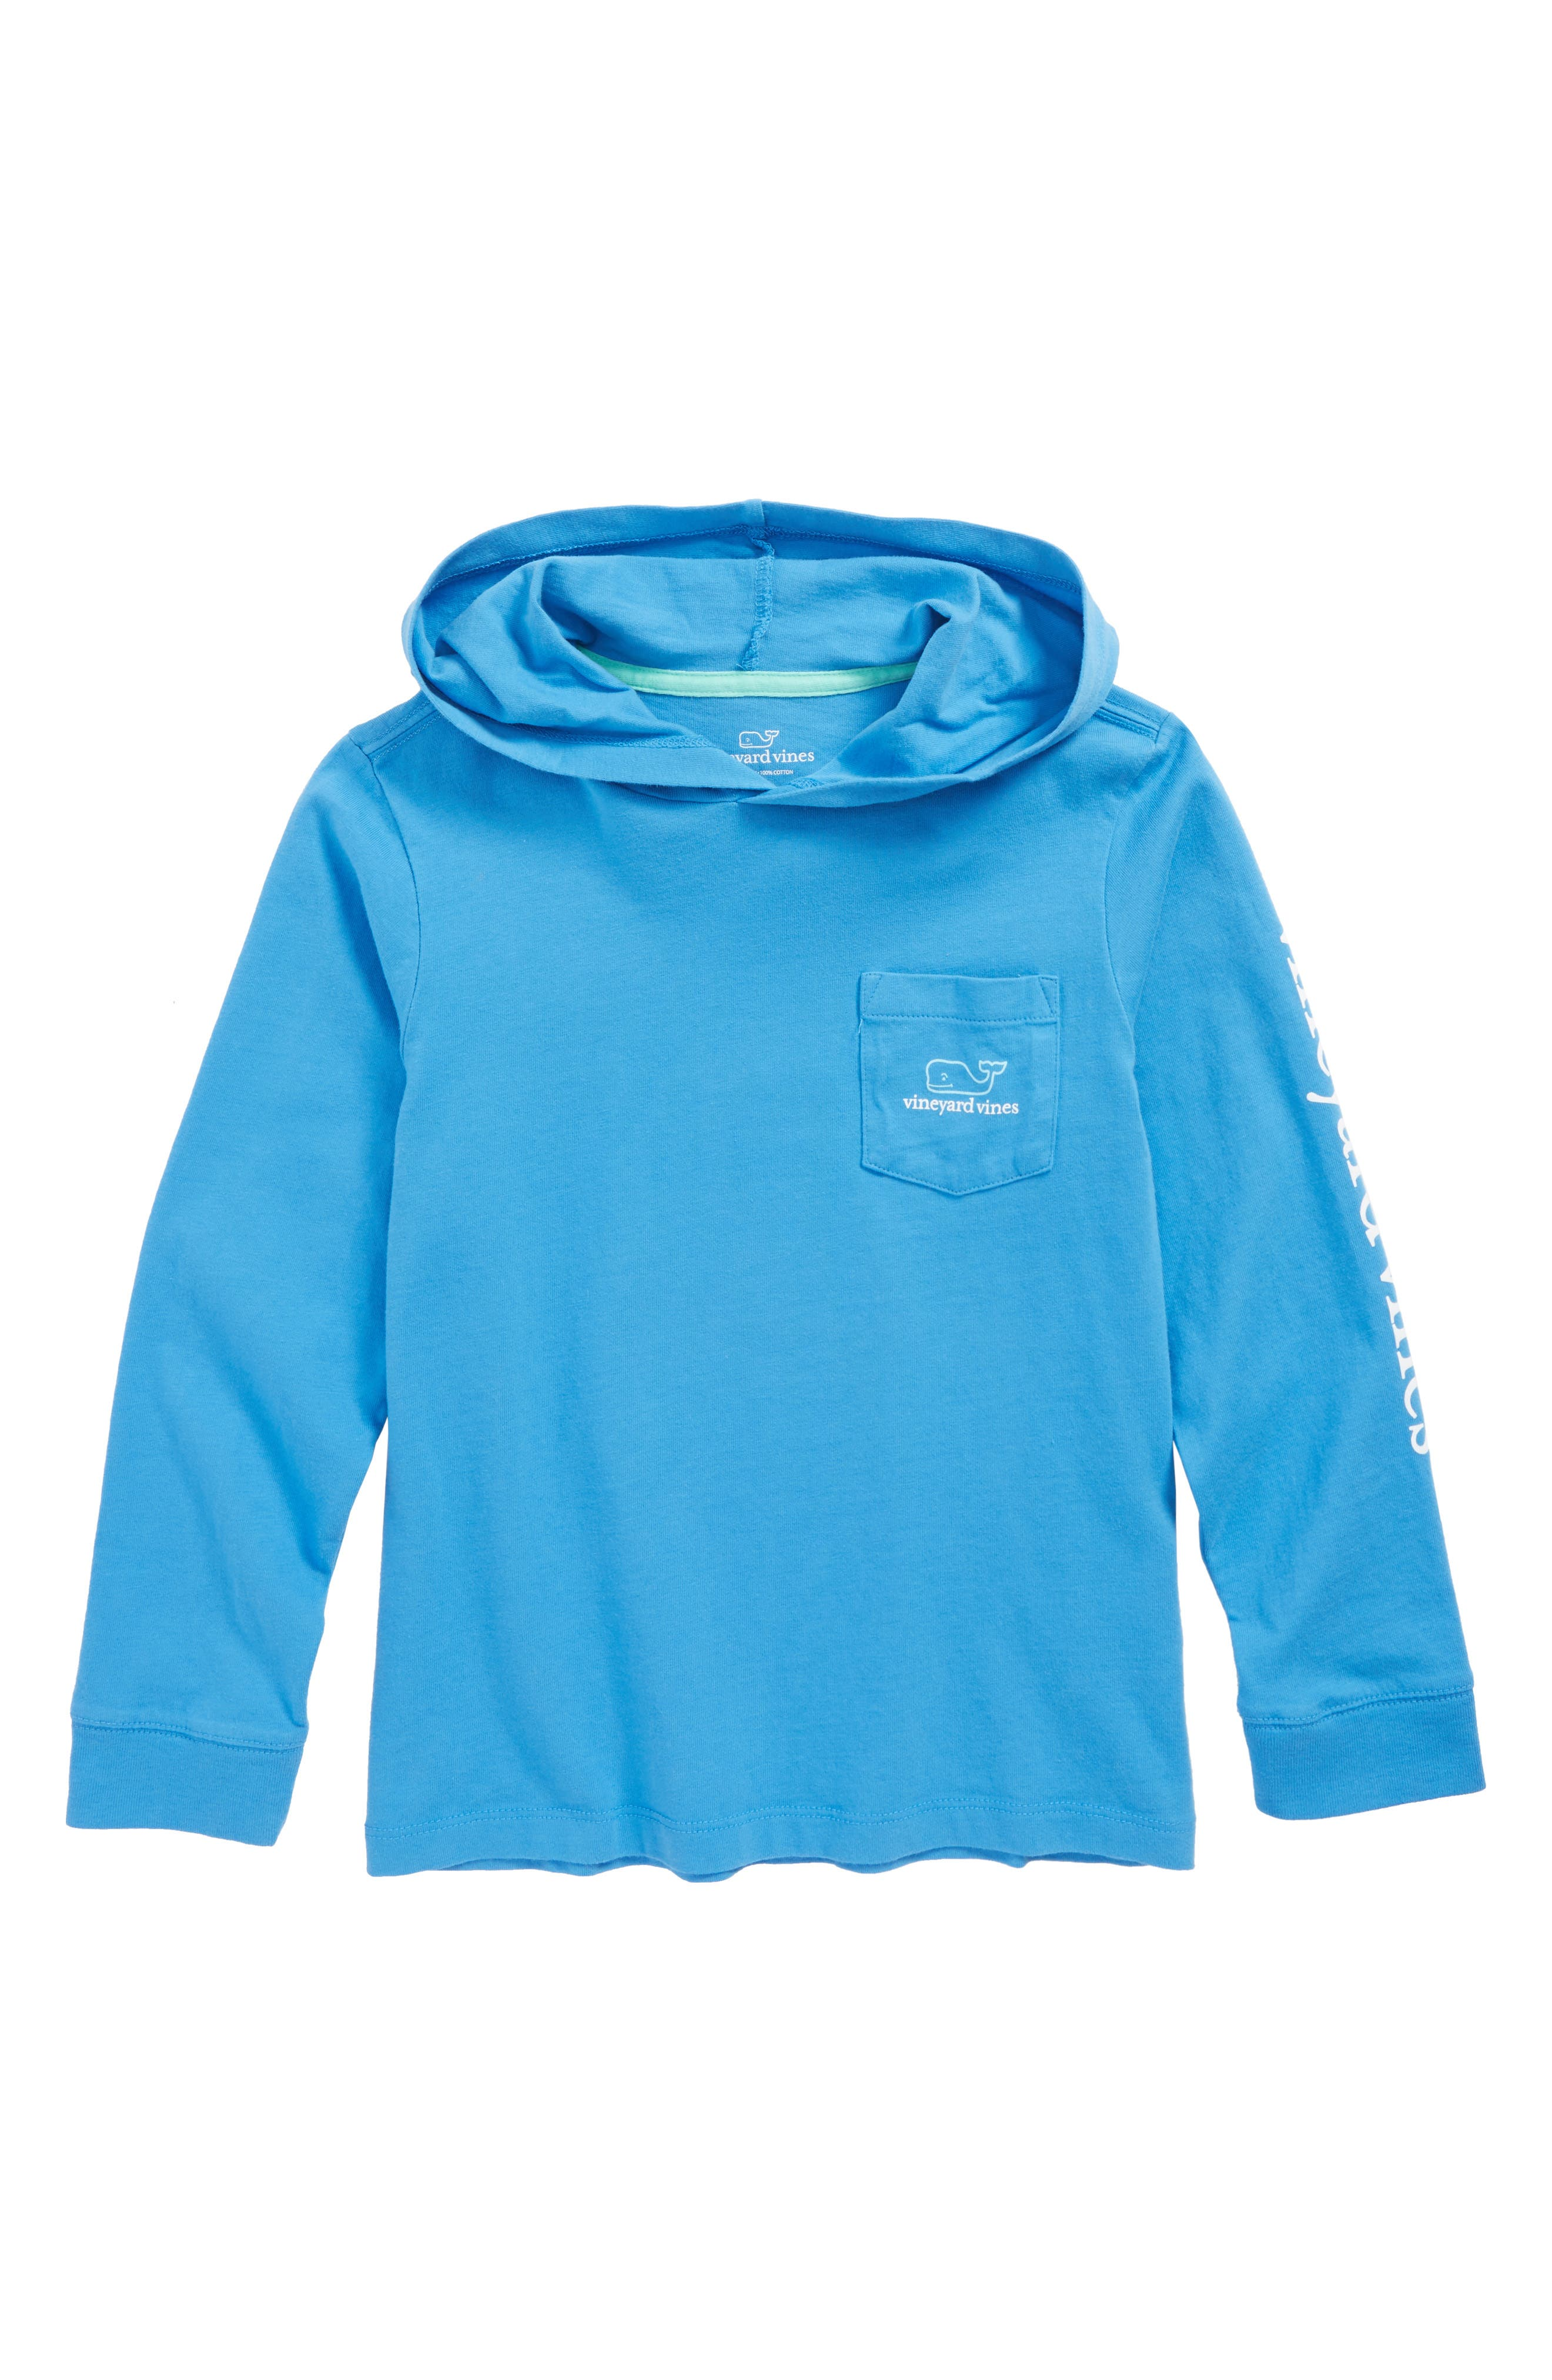 Two-Tone Whale Hooded T-Shirt,                             Main thumbnail 2, color,